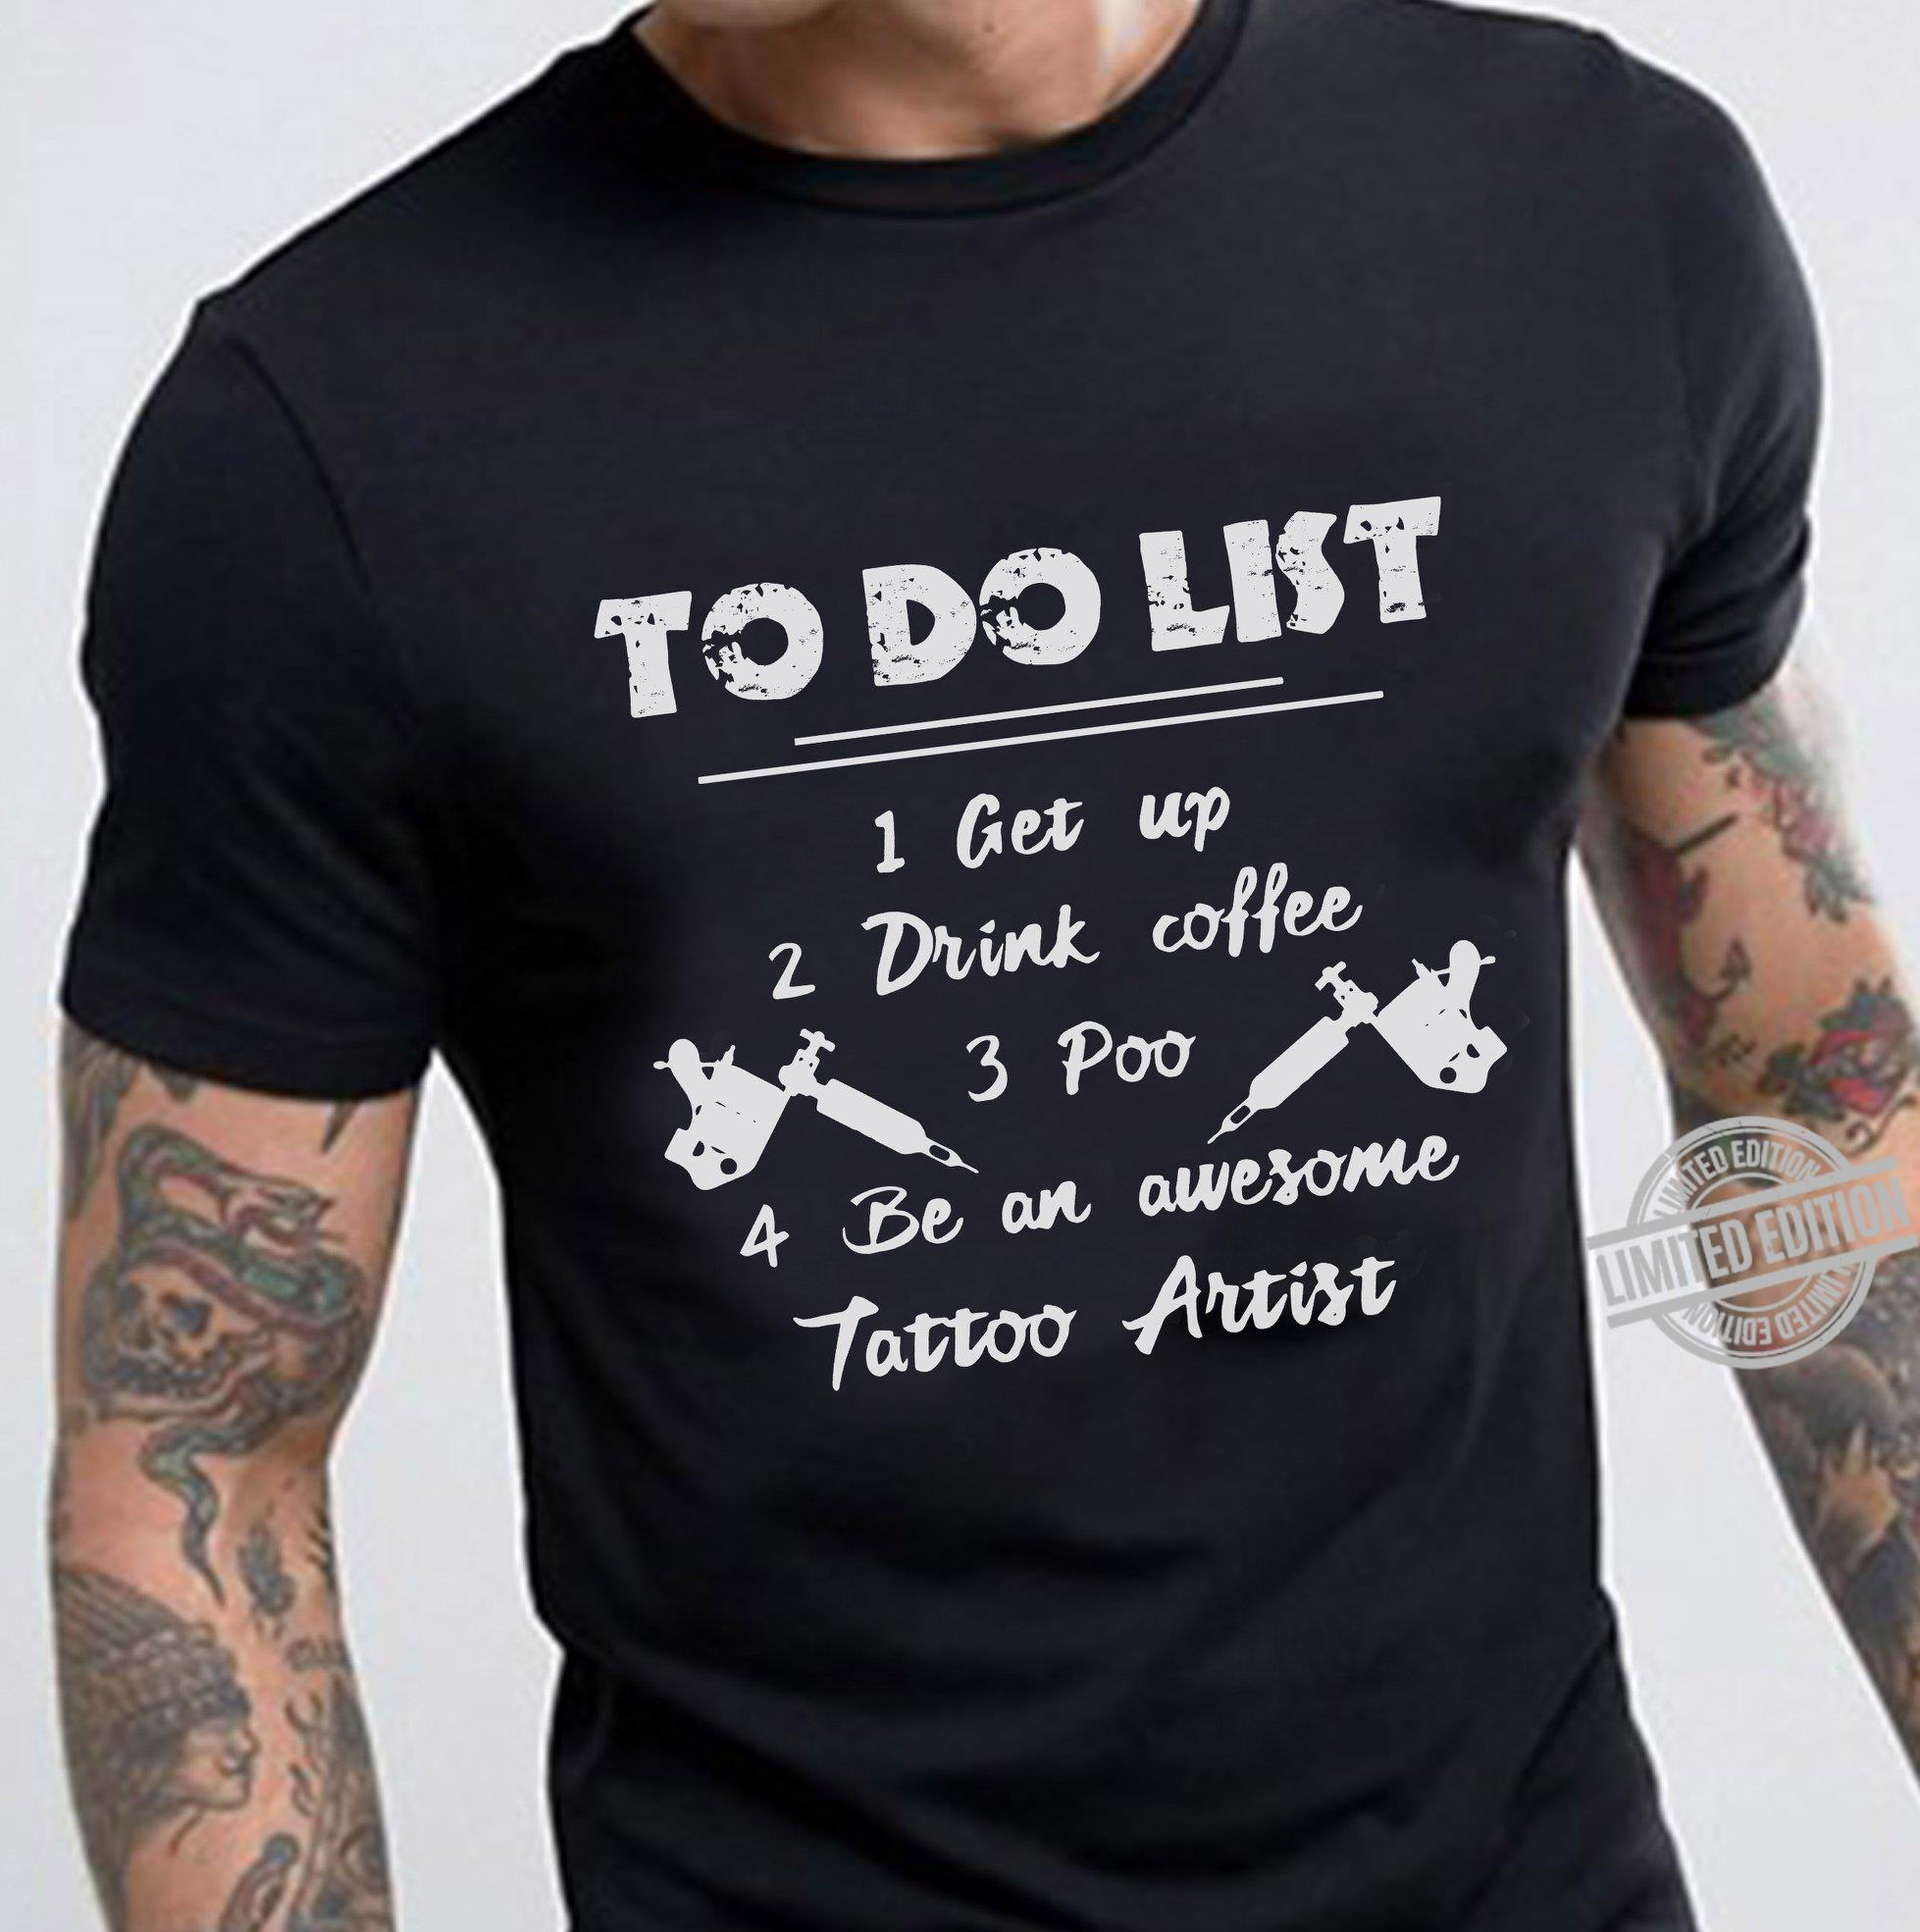 To Do List Get Up Drink Coffee Poo Be An Awesome Tattoo Artist Shirt